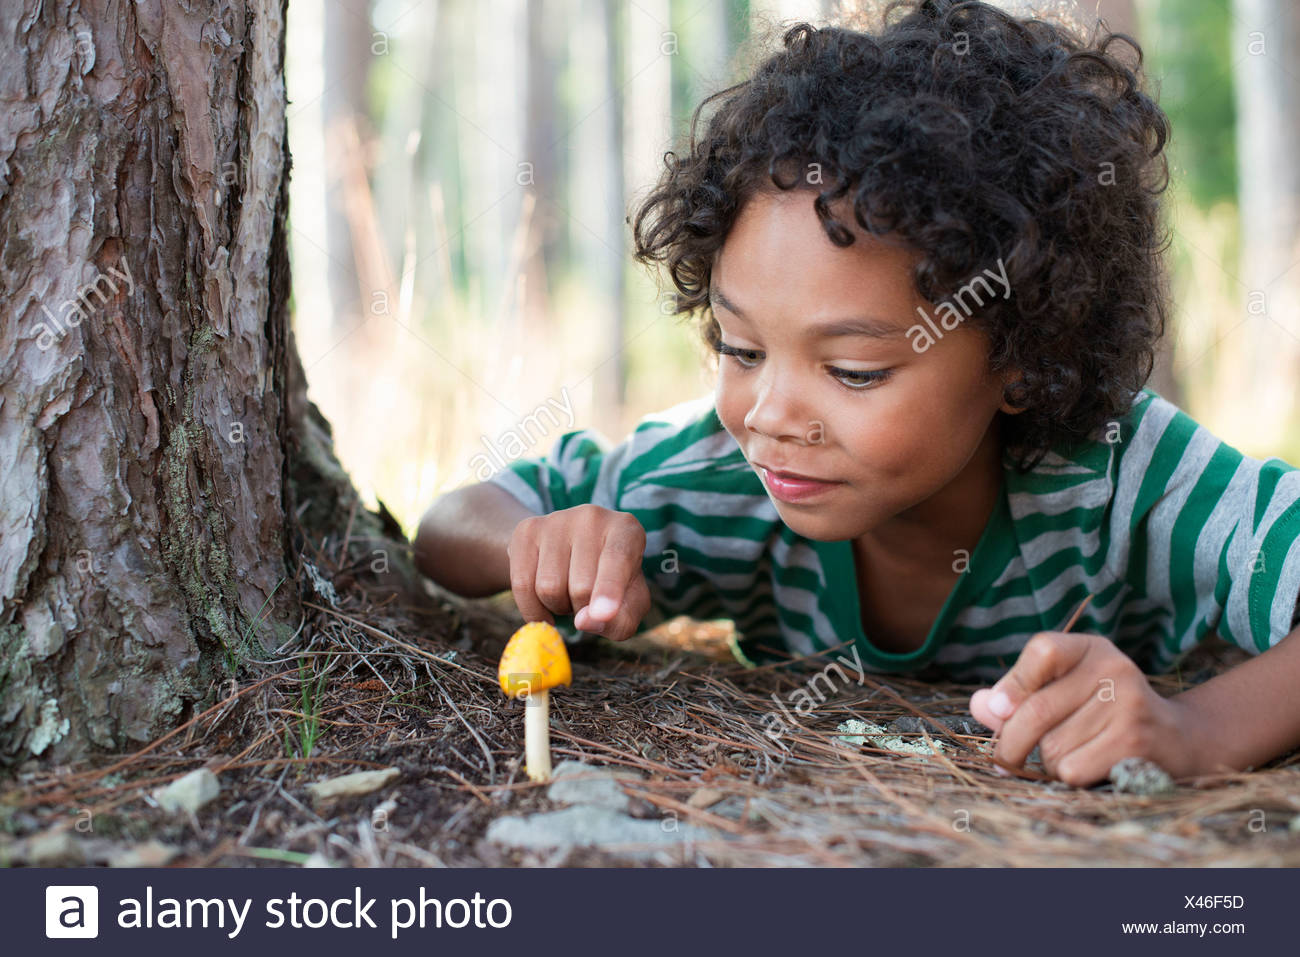 Trees on the shores of a lake. A child lying down inspecting a small yellow fungi mushroom. - Stock Image